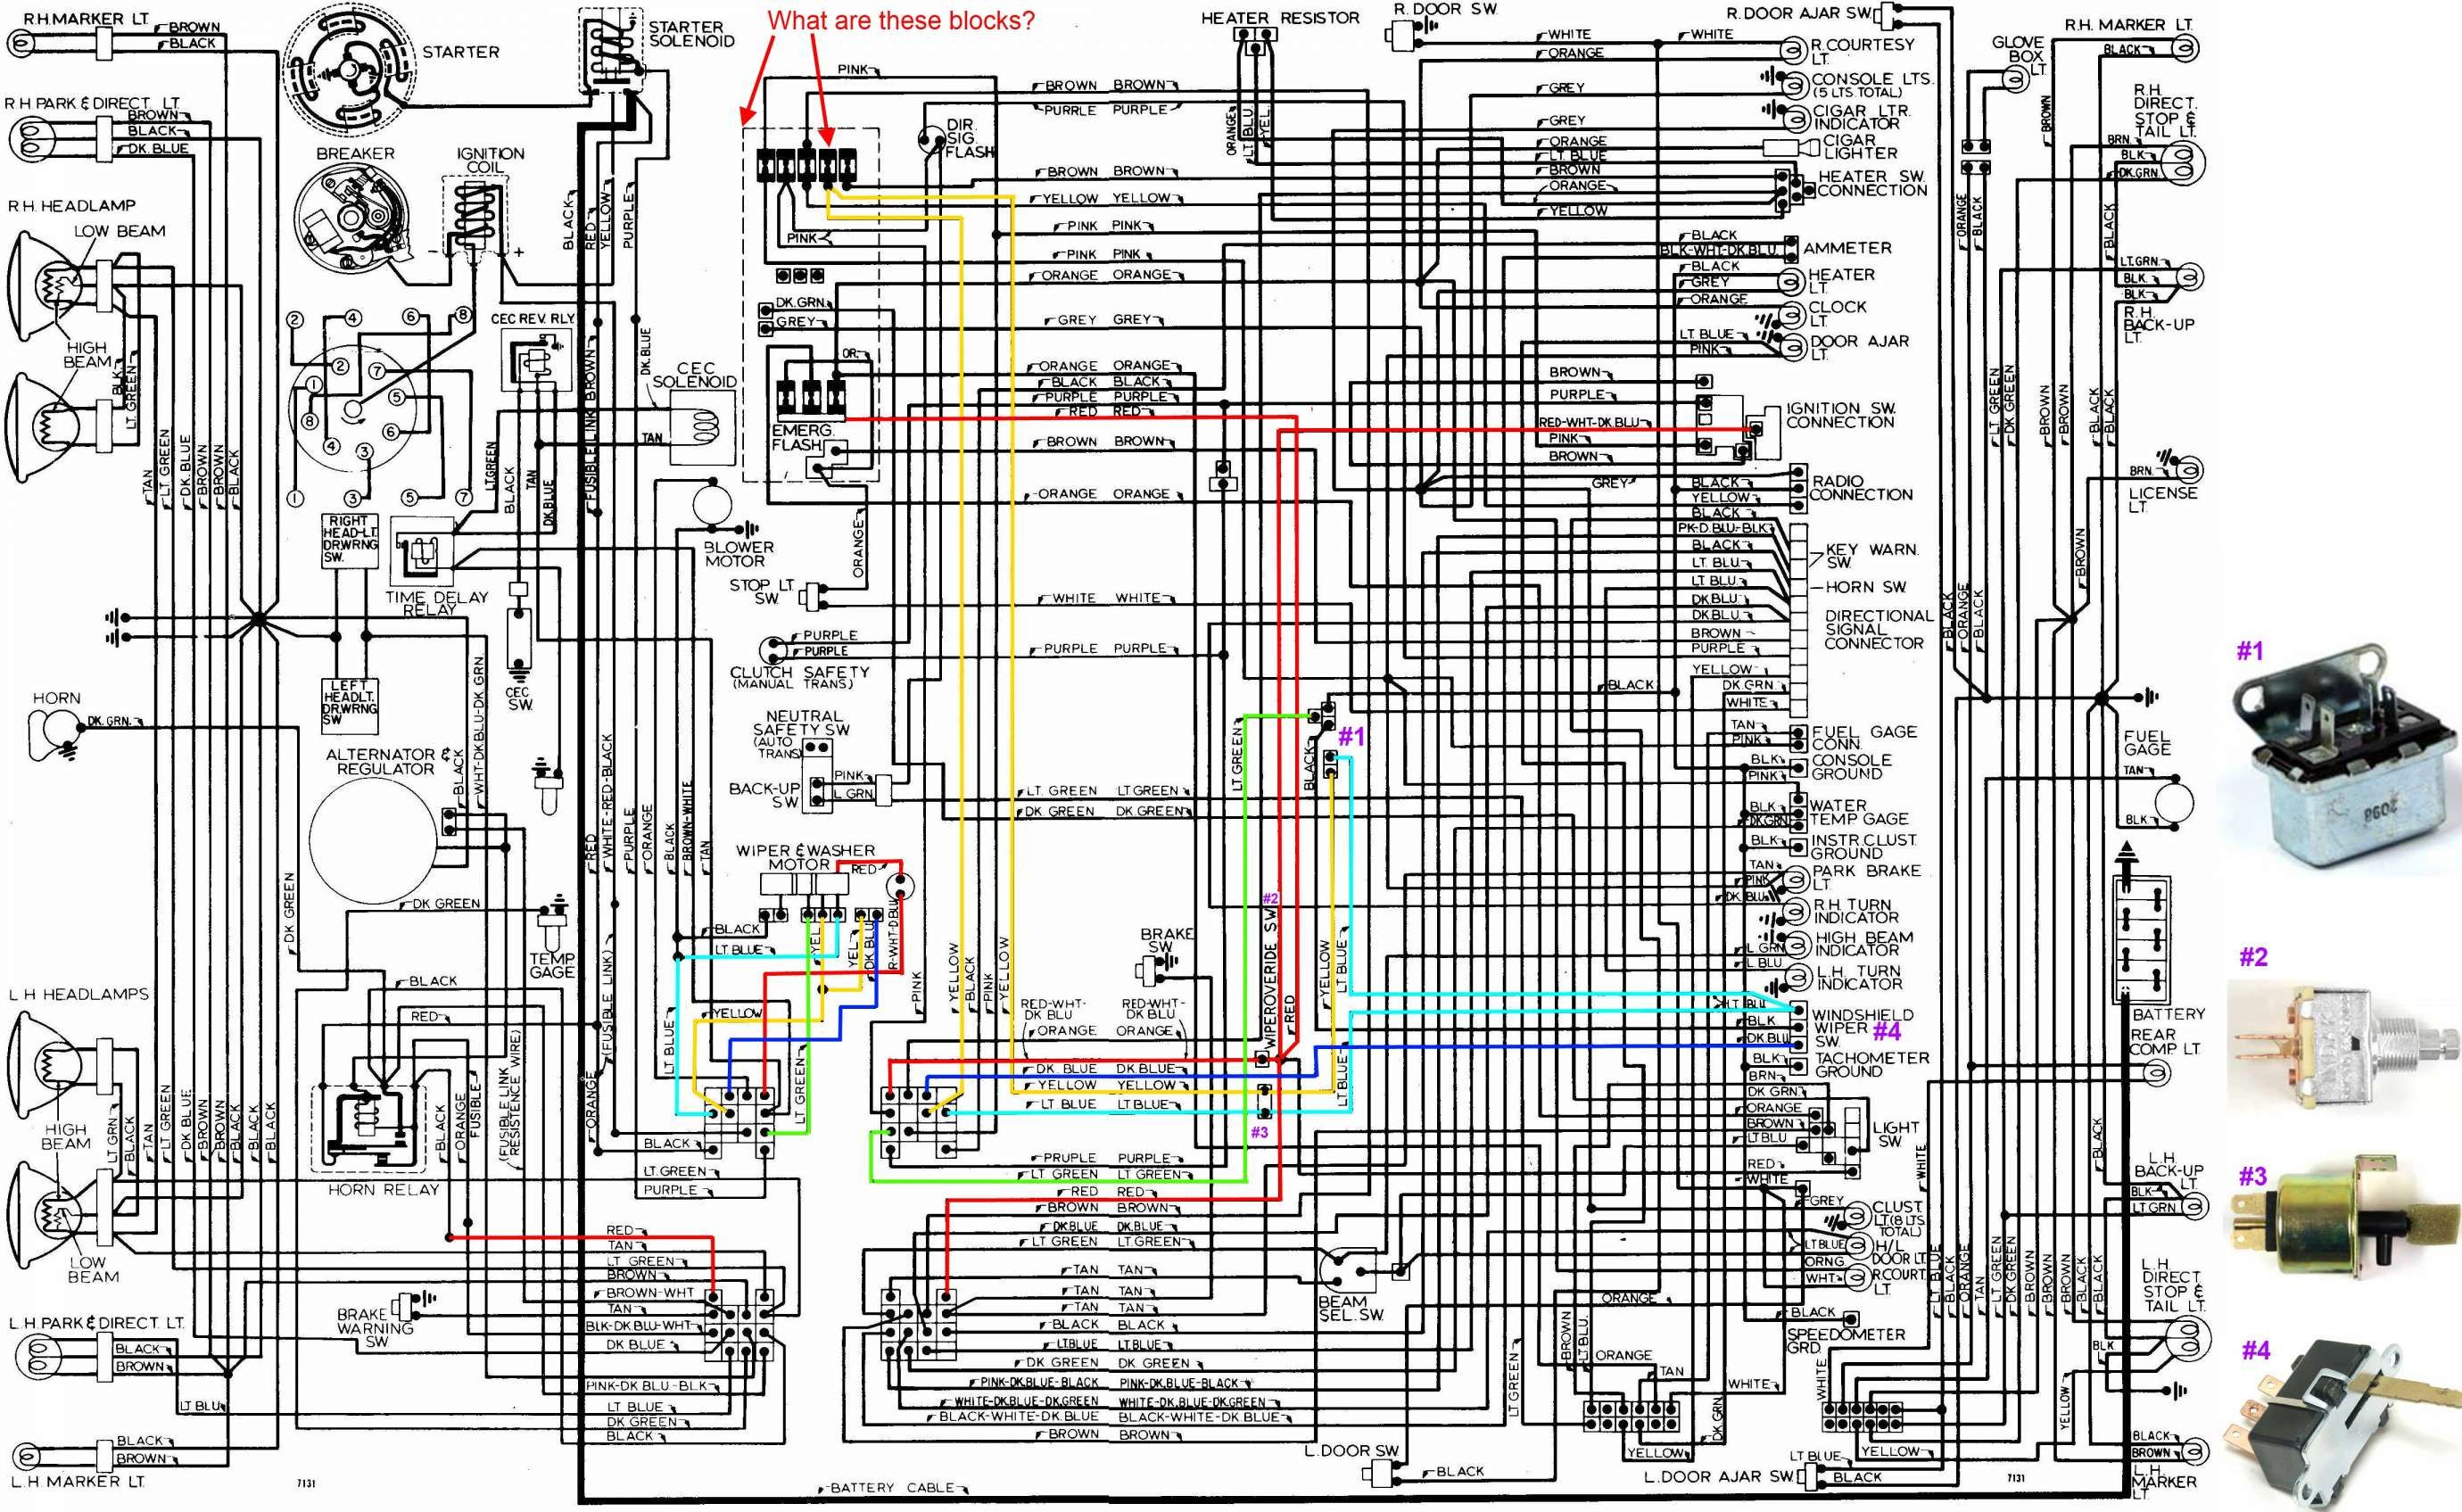 12 72 Chevelle Engine Wiring Harness Diagram Engine Diagram Wiringg Net In 2020 72 Chevelle Chevelle Diagram